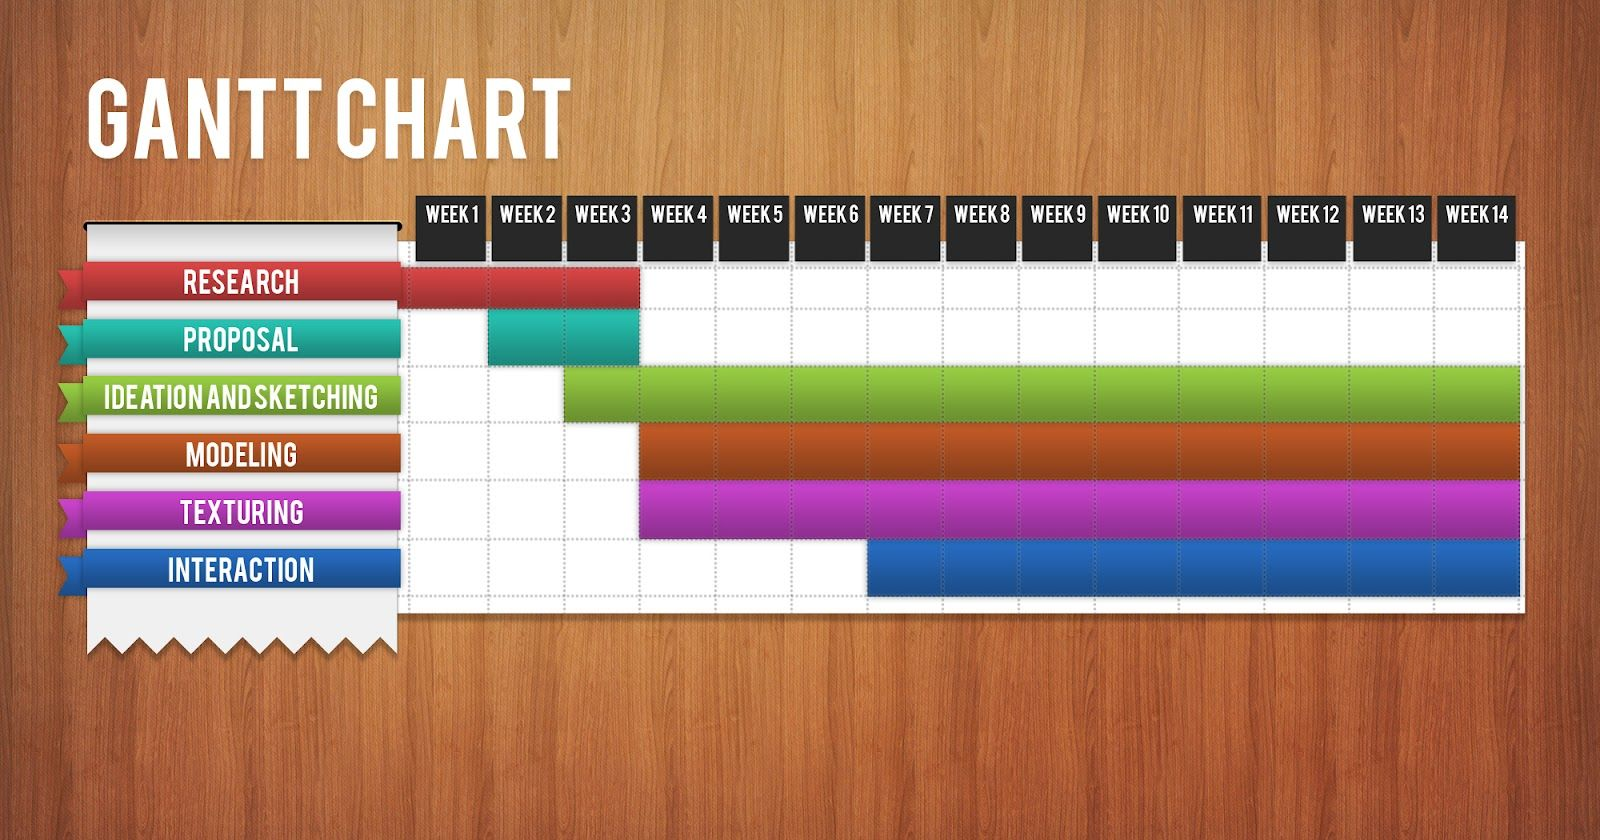 How To Create A Dynamic Gantt Chart In Excel